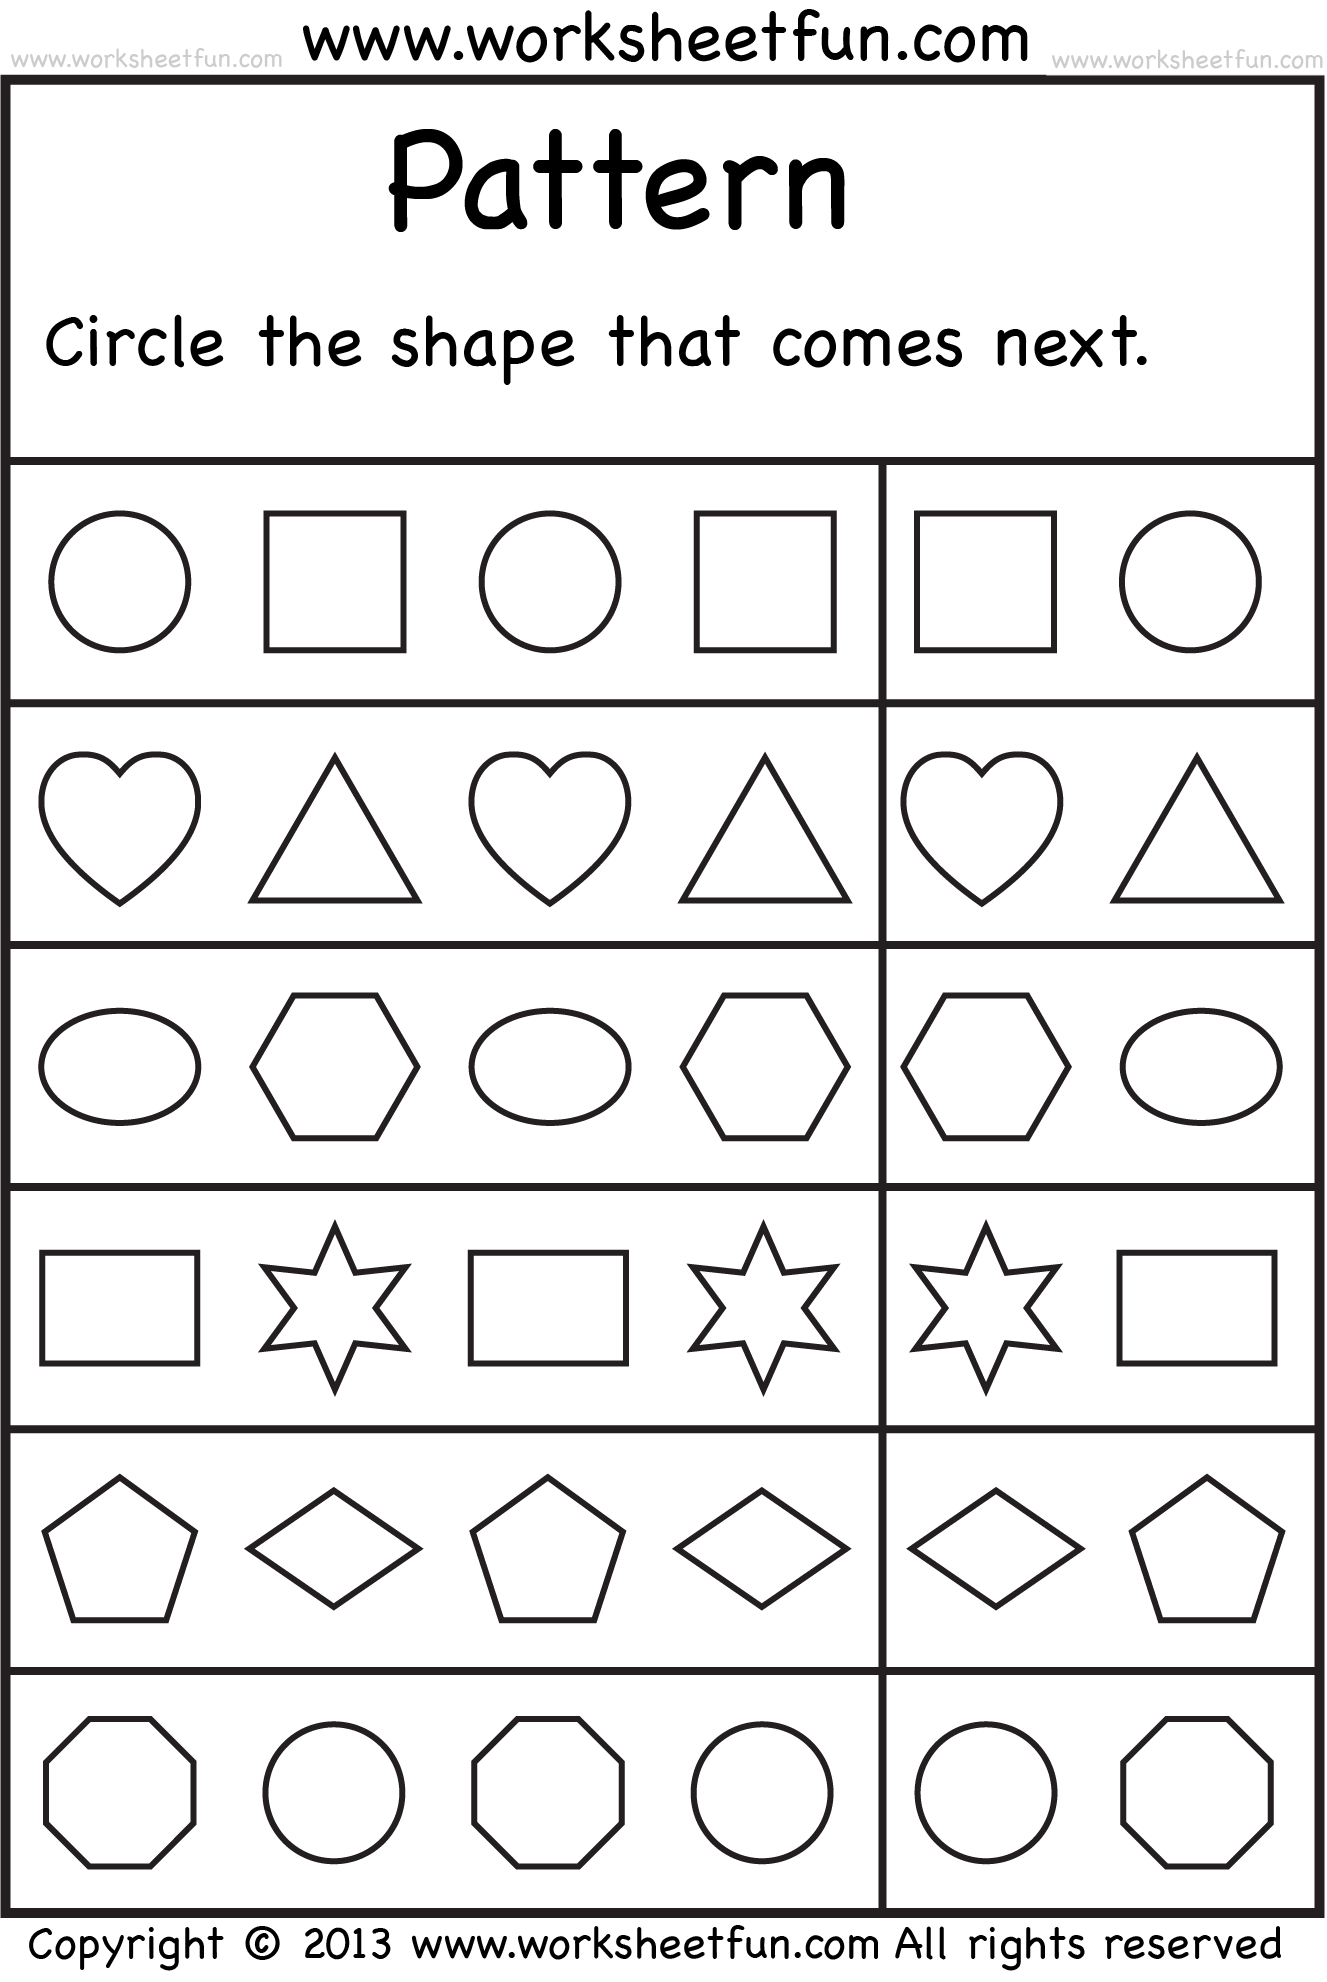 Weirdmailus  Pretty  Images About School Worksheets On Pinterest  Number Words  With Heavenly  Images About School Worksheets On Pinterest  Number Words Alphabet Worksheets And Free Printable Kindergarten Worksheets With Attractive Simple Machines Mechanical Advantage Worksheet Also Count And Noncount Nouns Worksheets In Addition Coloring Numbers Worksheet And Free Printable Addition And Subtraction Worksheets For Kindergarten As Well As Division Equations Worksheet Additionally Short Vowel Sounds Worksheet From Pinterestcom With Weirdmailus  Heavenly  Images About School Worksheets On Pinterest  Number Words  With Attractive  Images About School Worksheets On Pinterest  Number Words Alphabet Worksheets And Free Printable Kindergarten Worksheets And Pretty Simple Machines Mechanical Advantage Worksheet Also Count And Noncount Nouns Worksheets In Addition Coloring Numbers Worksheet From Pinterestcom